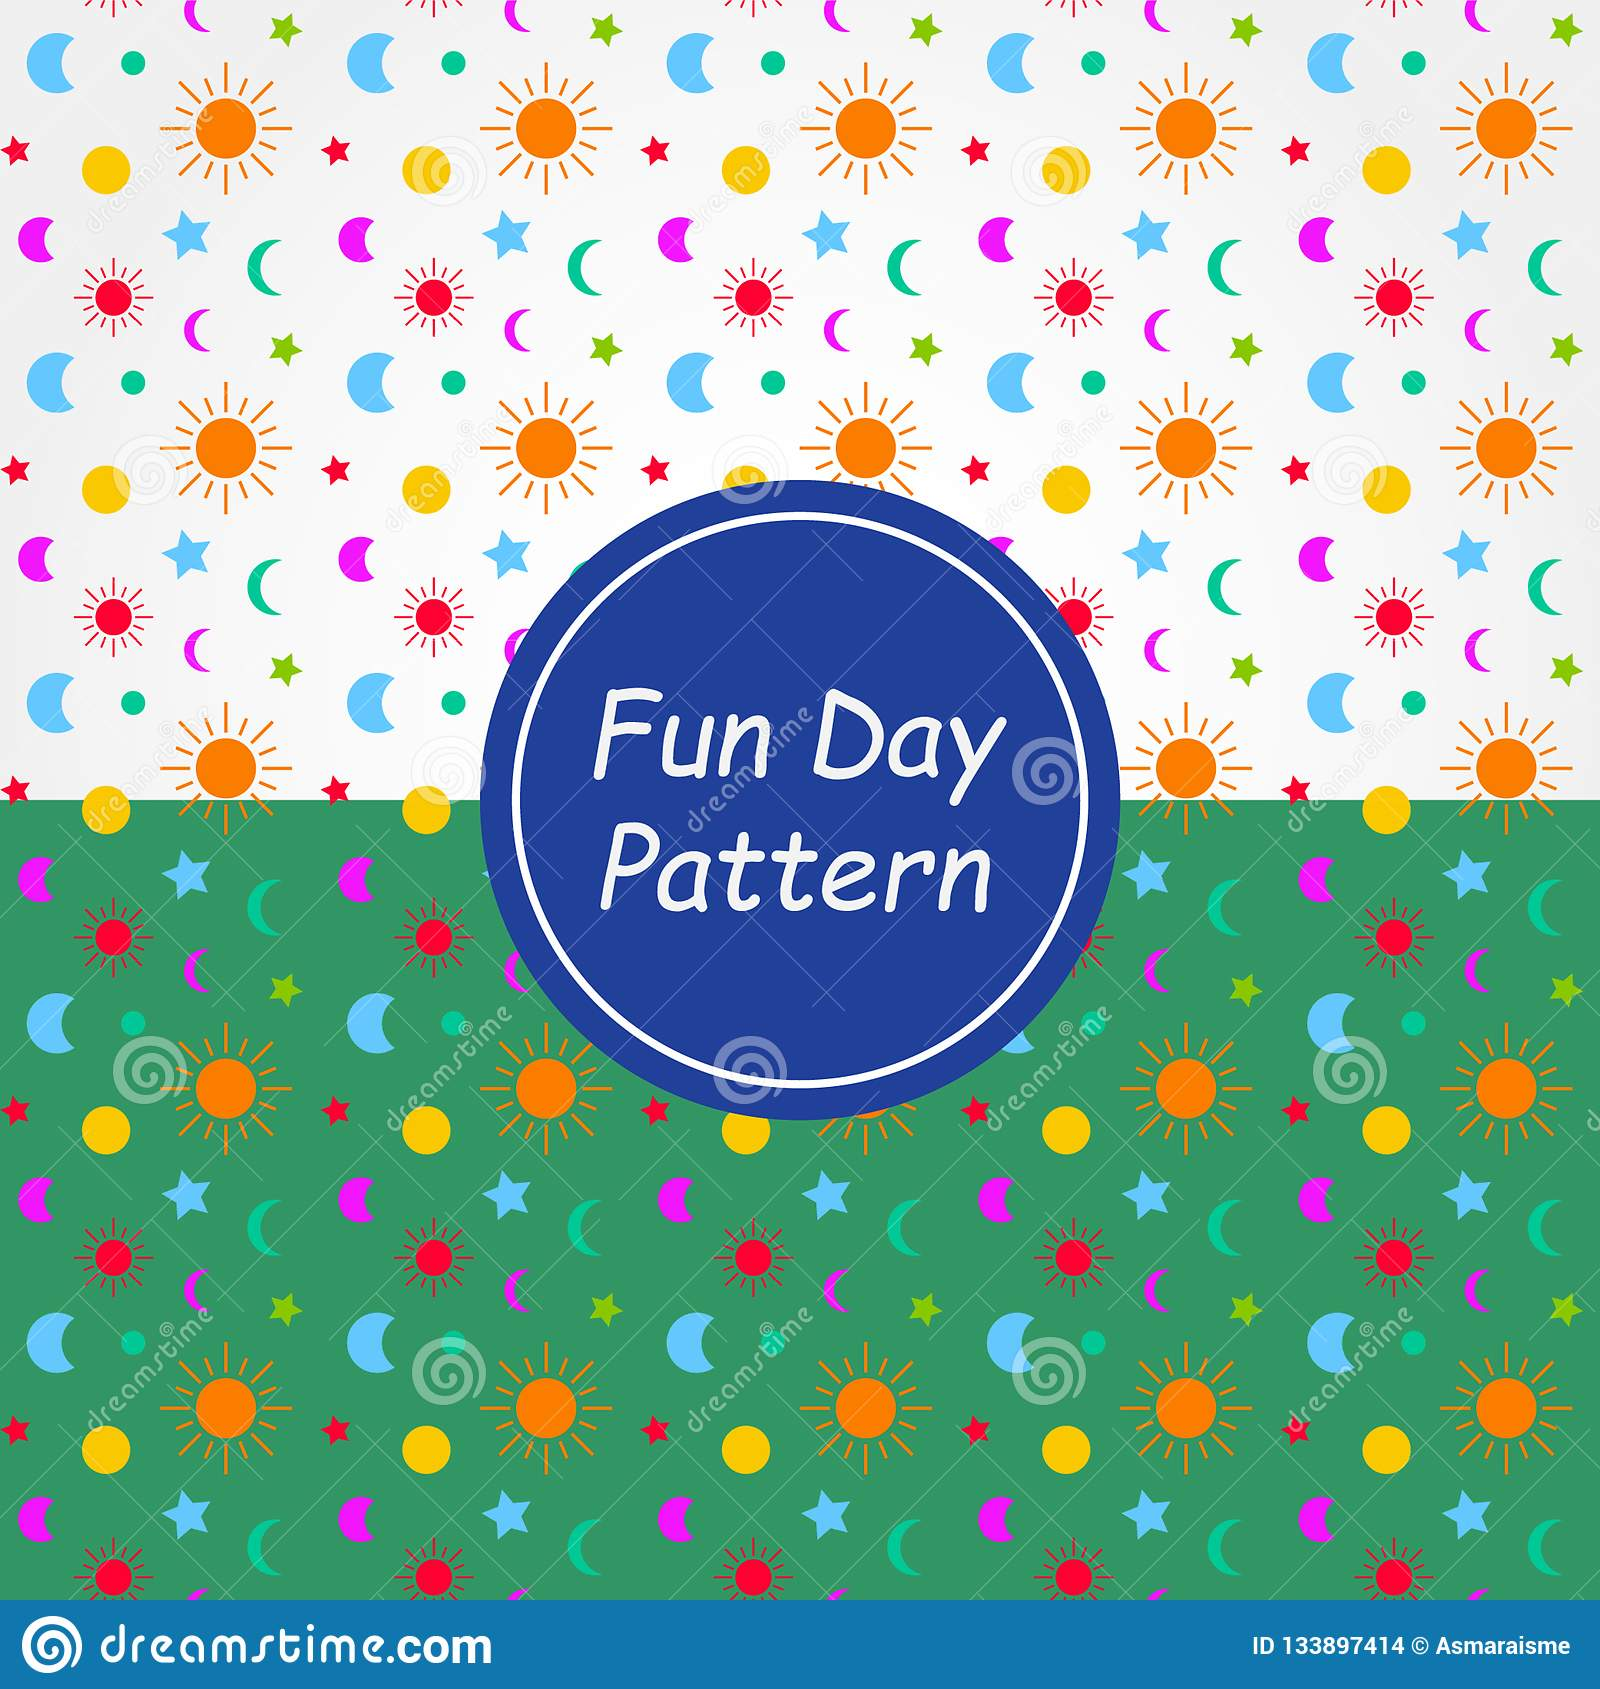 Fun Day Pattern Background and texture